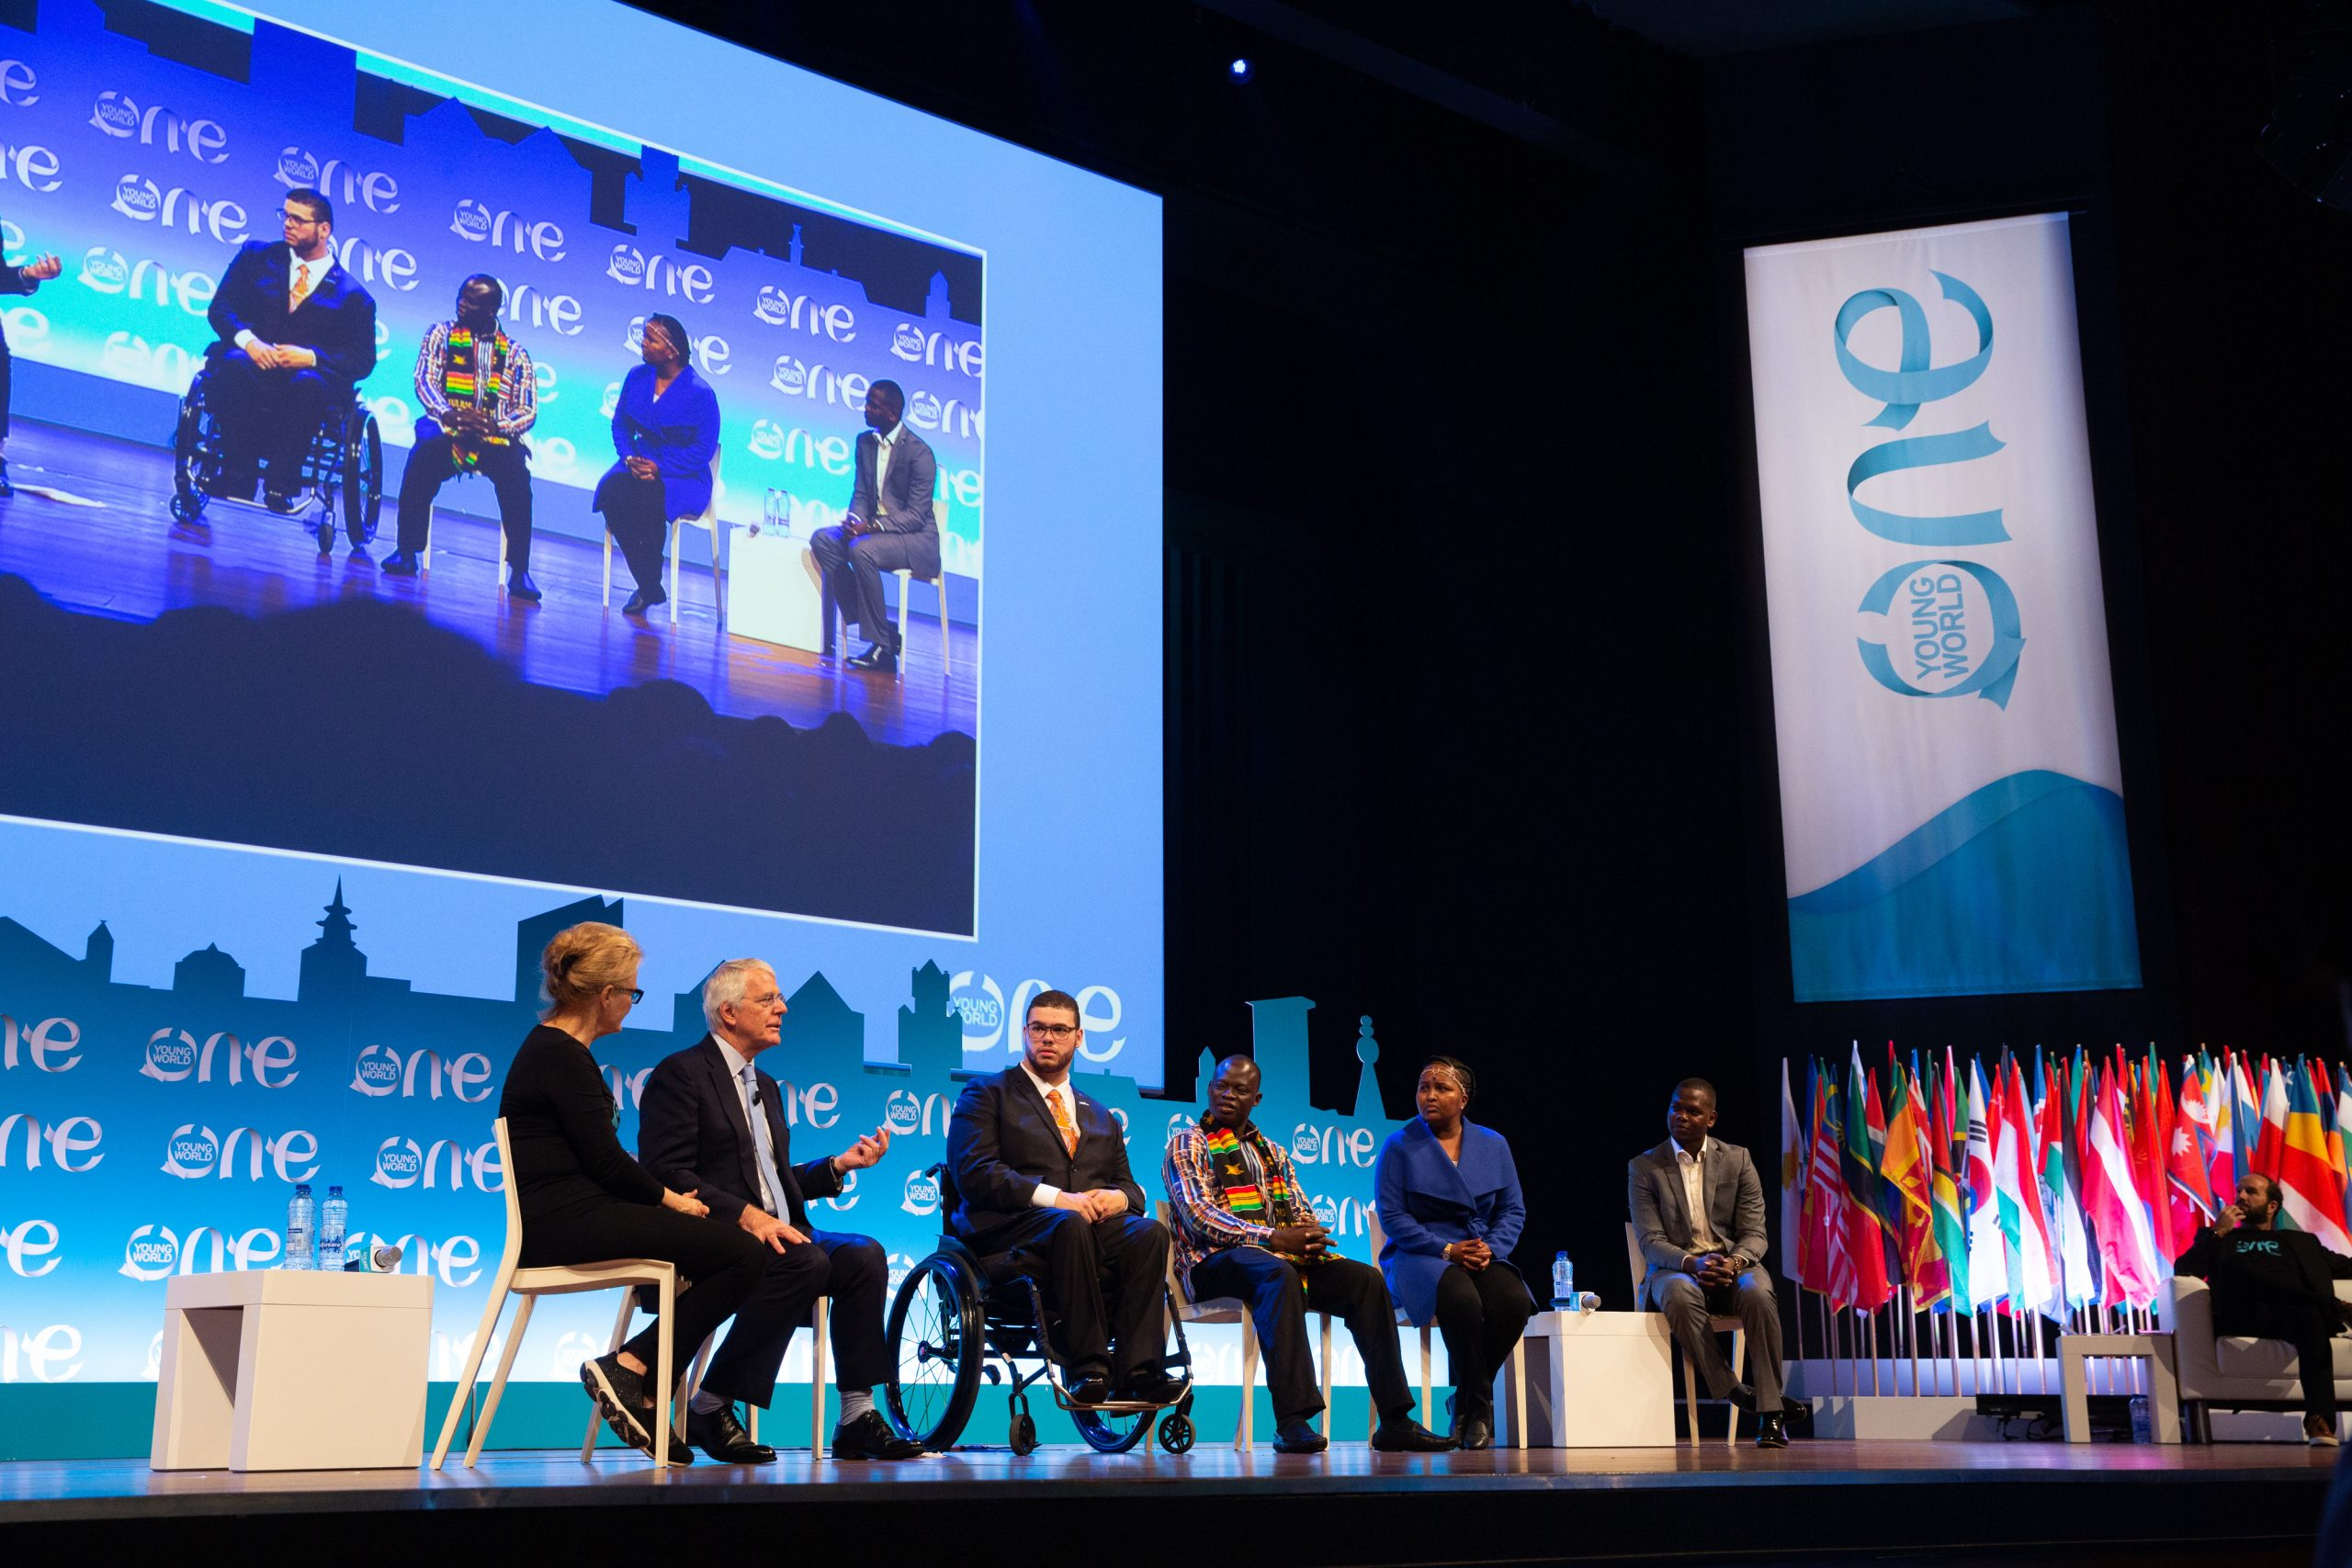 One Young World Politician of the Year Award to attend the OYW Summit 2020 in Munich, Germany (Fully-funded)